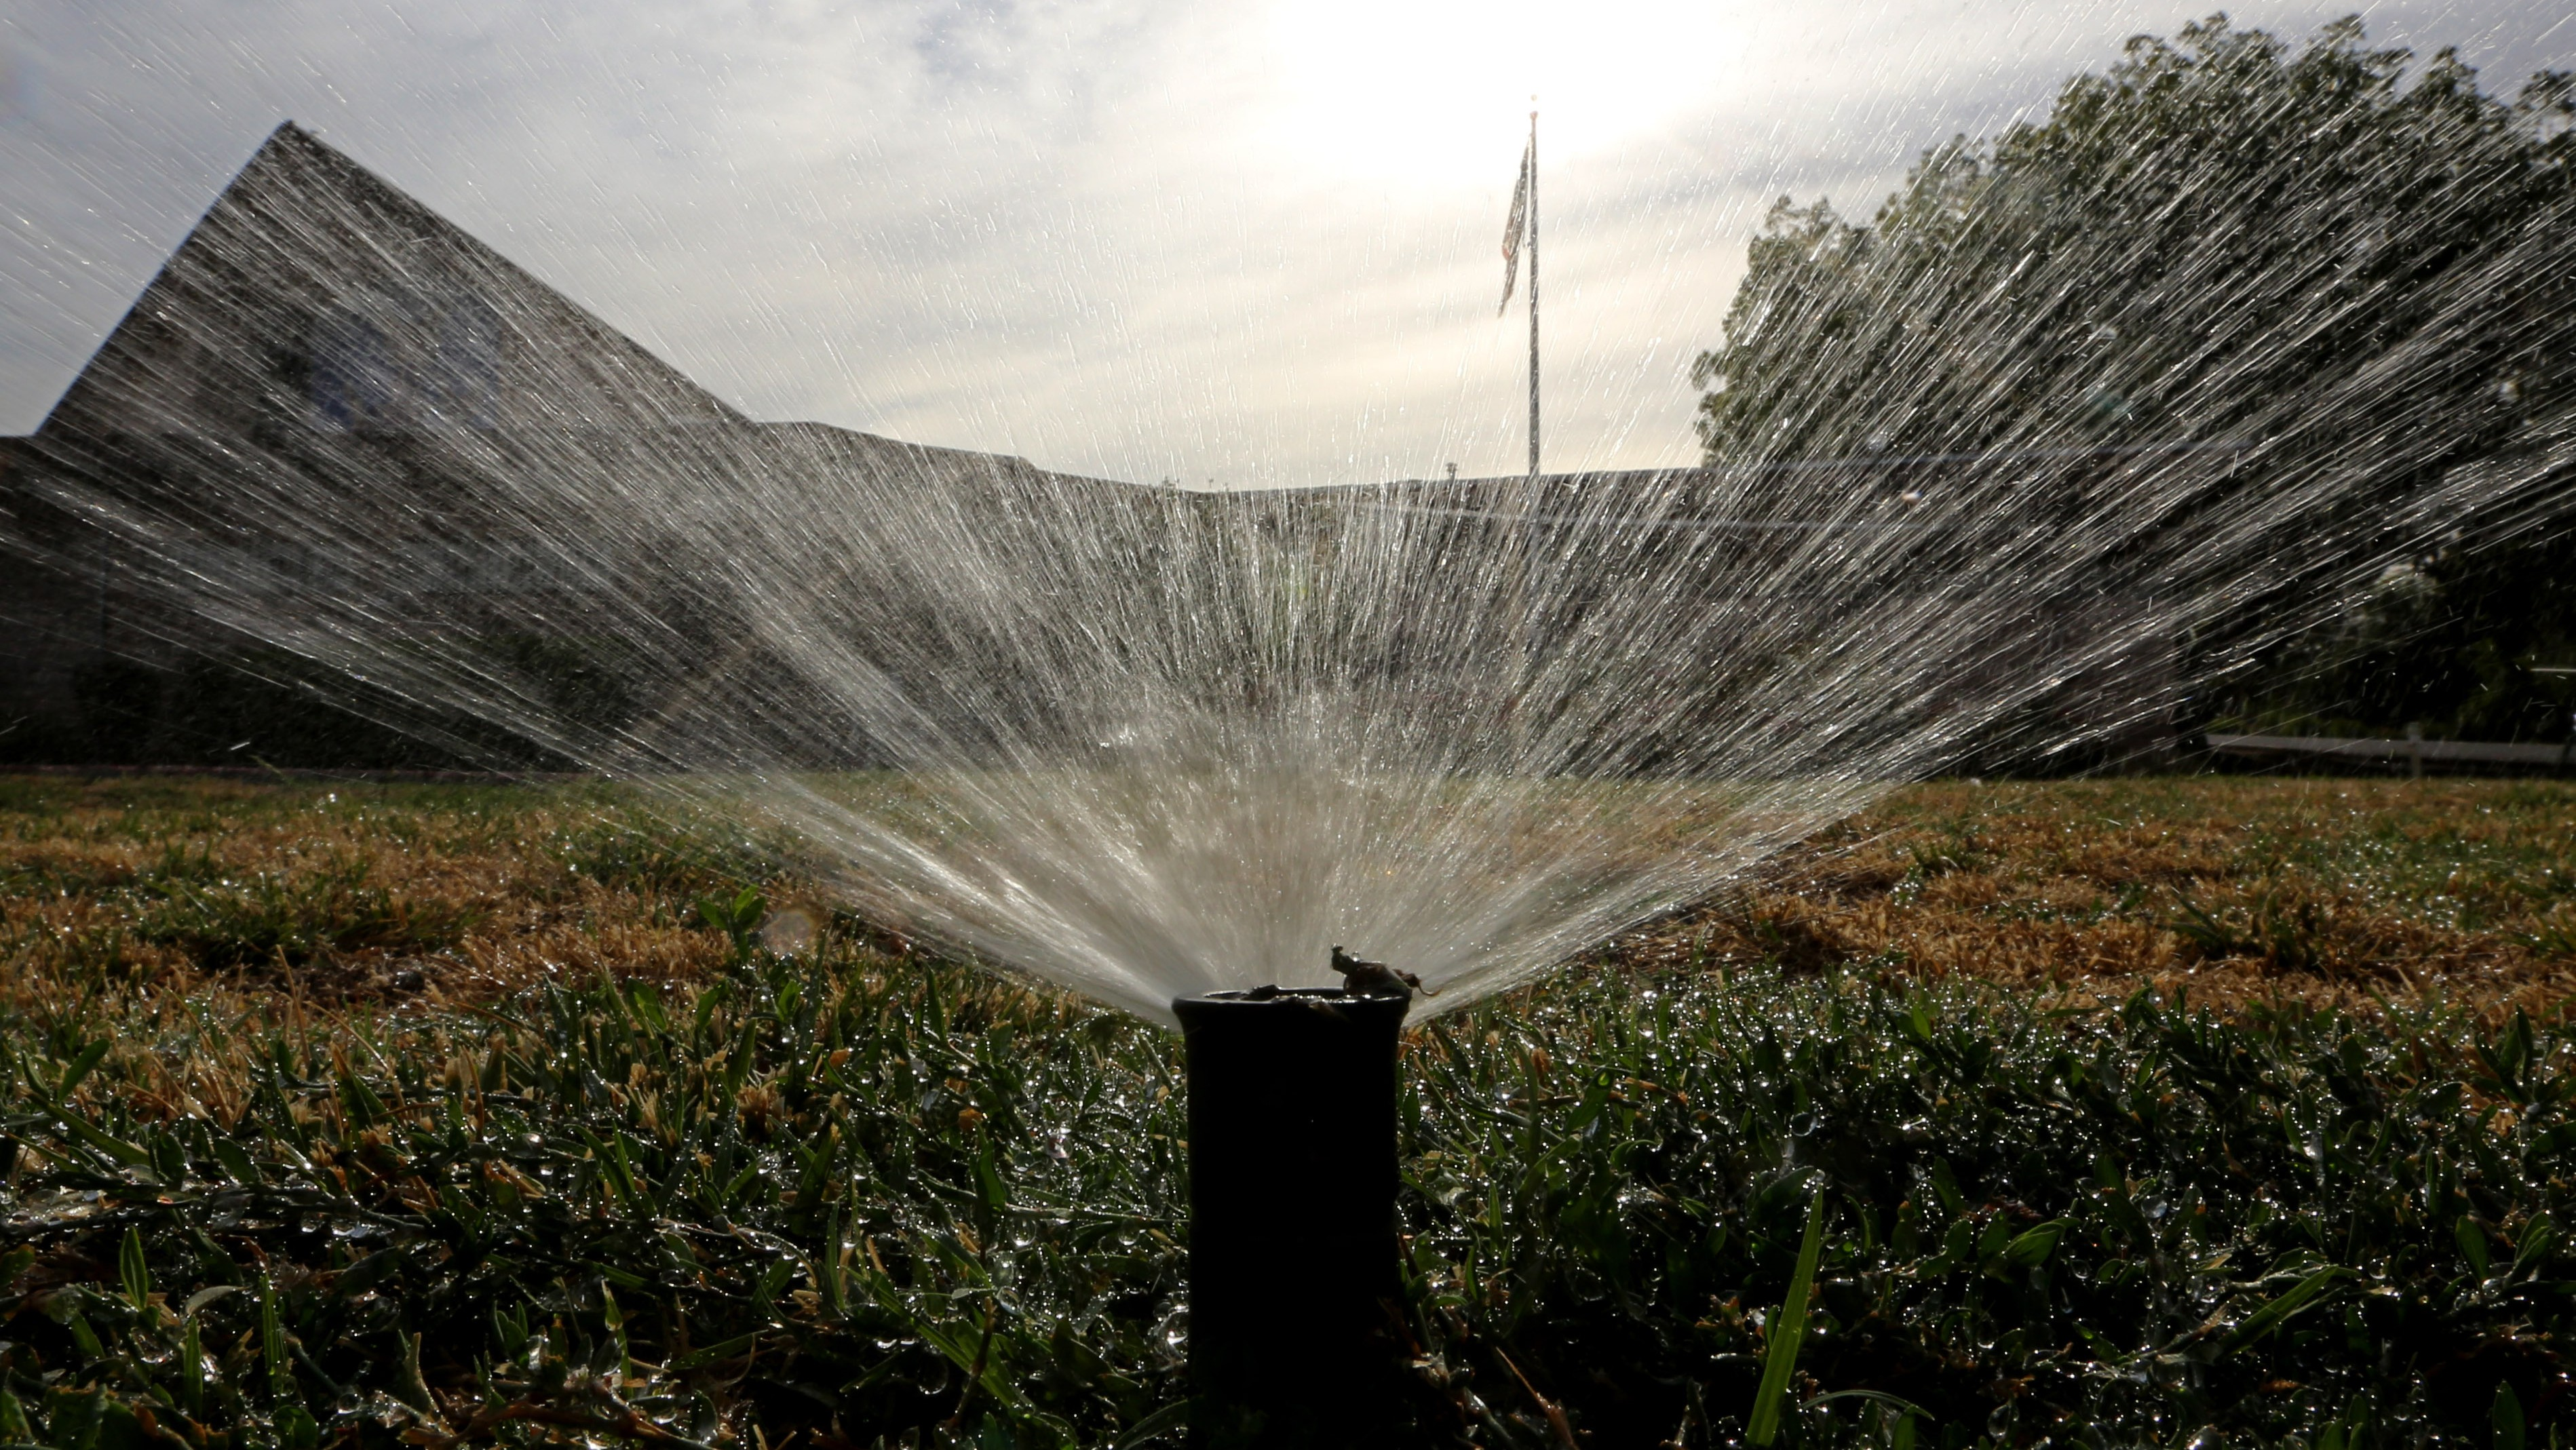 Californians Just Aren't Getting Their Water Use Under Control